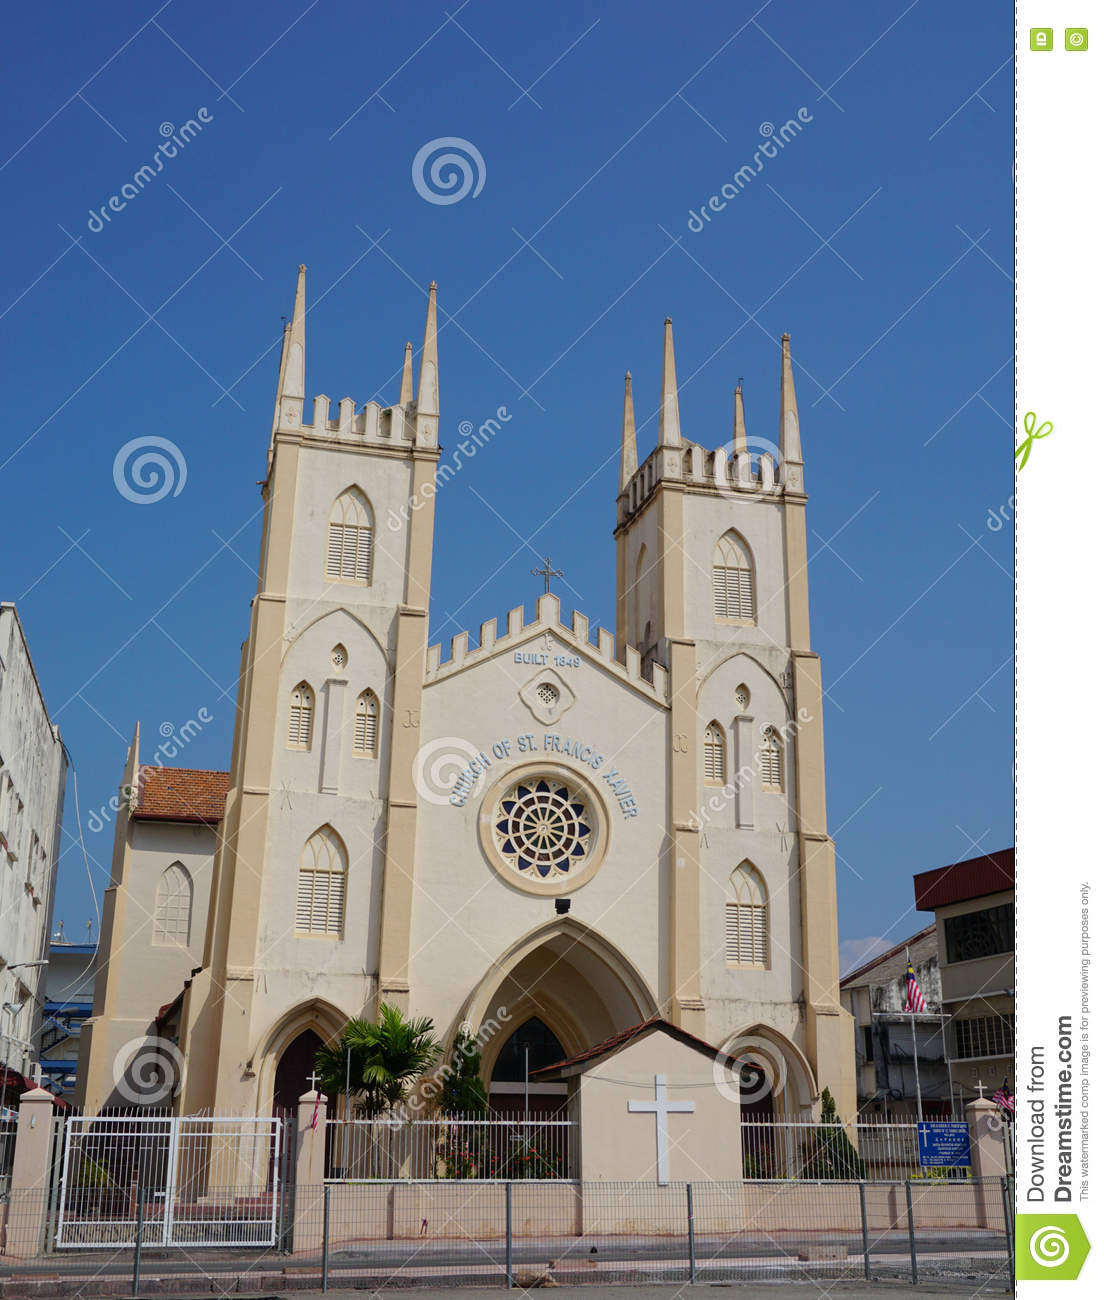 St Francis Xavier's Church Melaka City, Church Of St. Francis Xavier, Malacca City, Malaysia Editorial ...